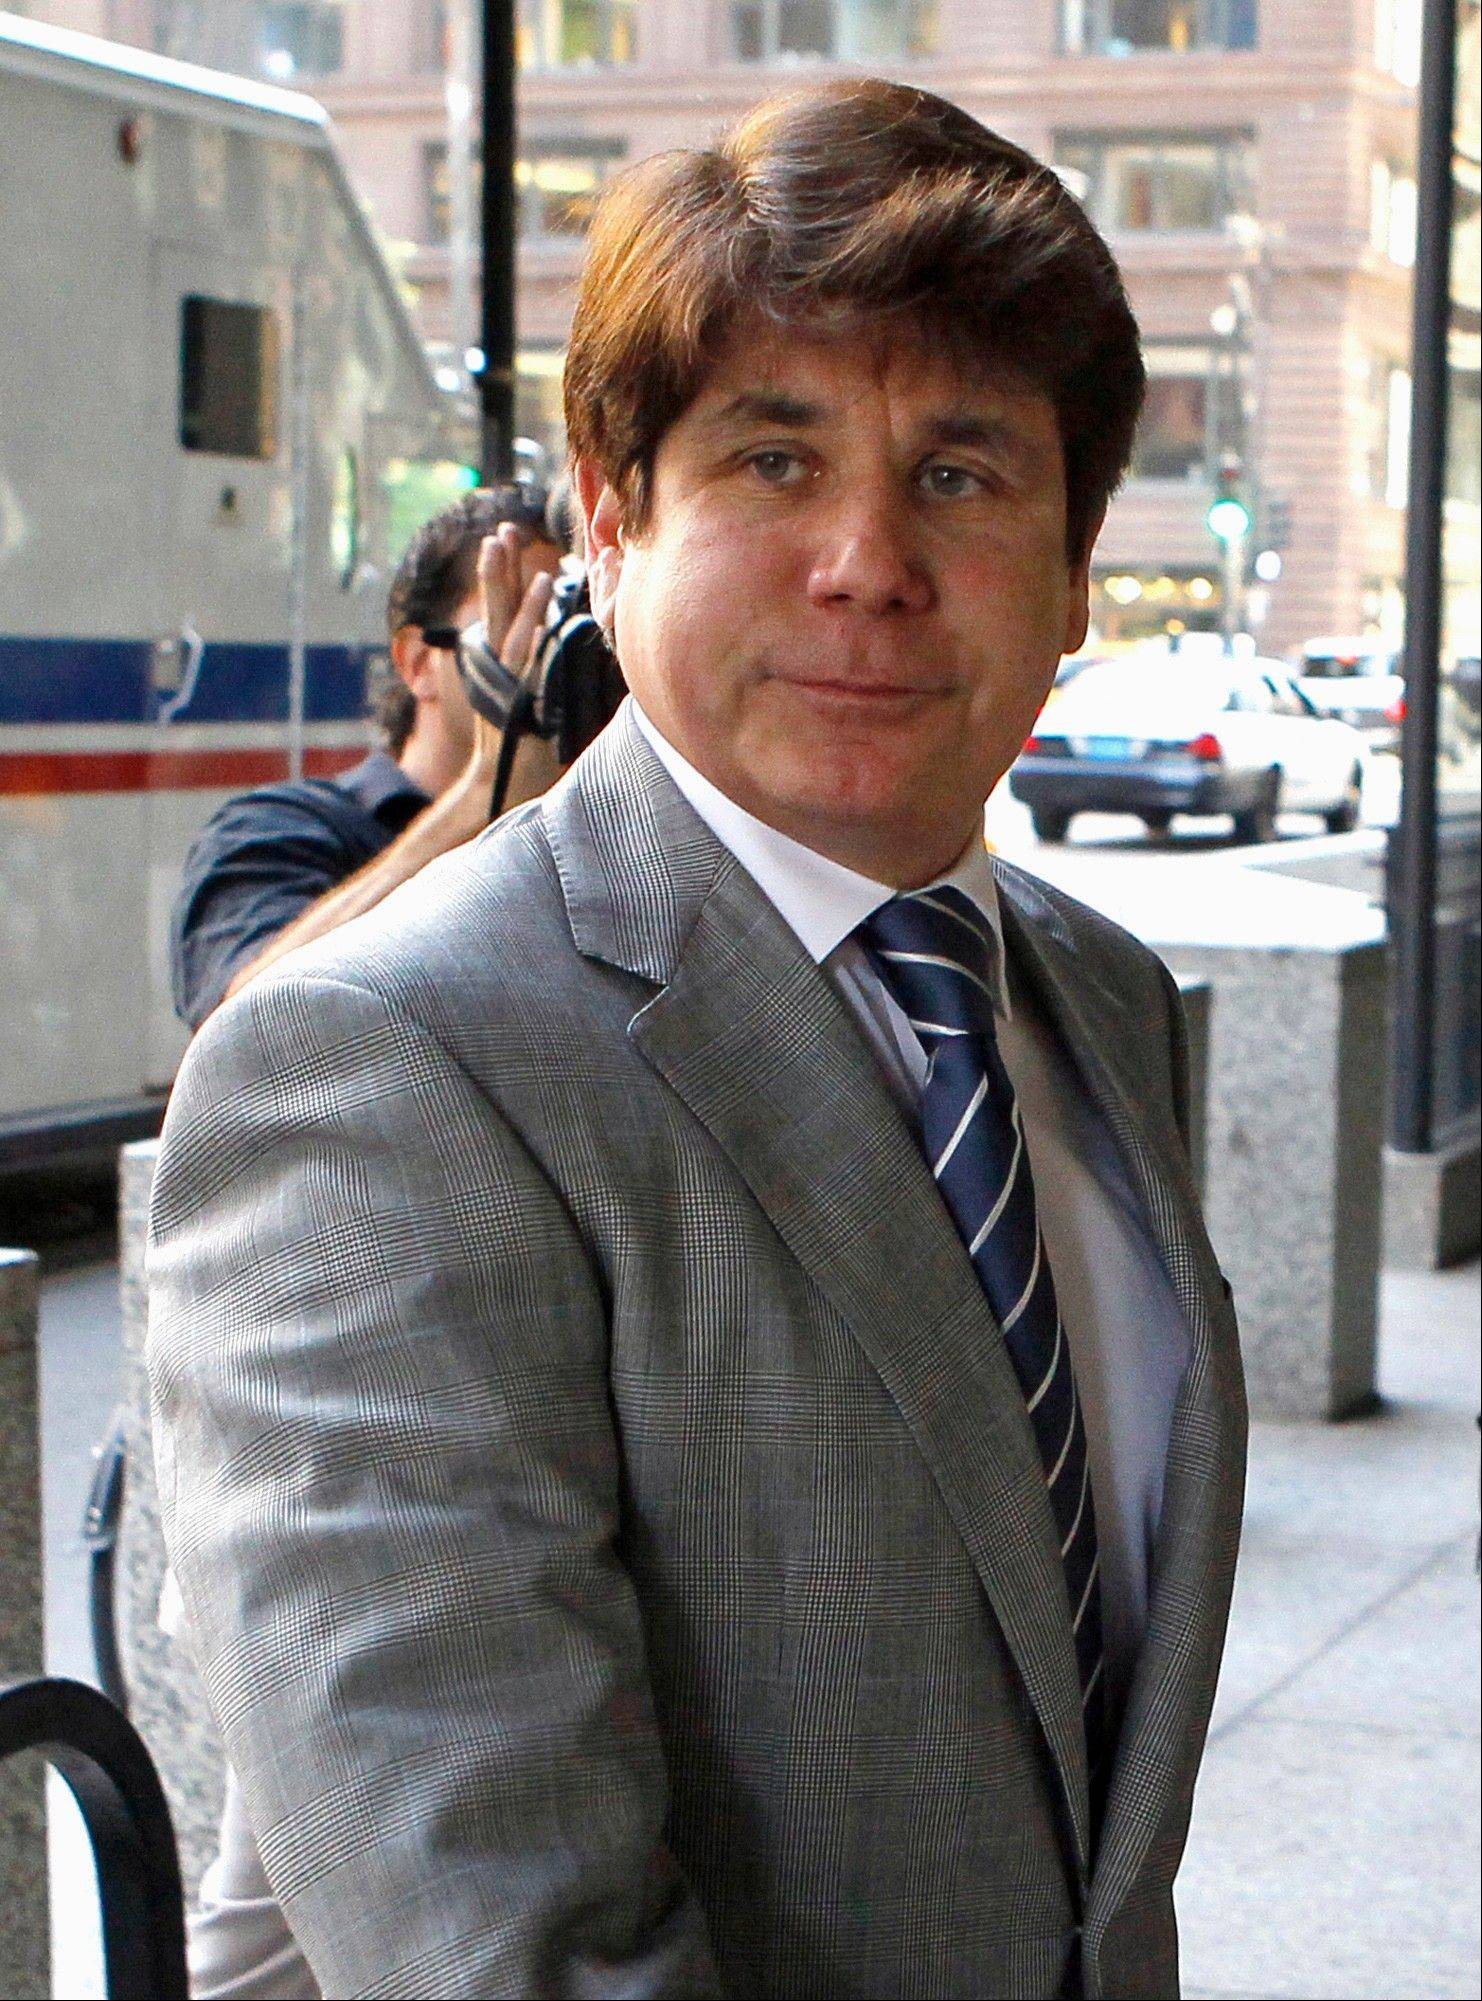 Former Illinois Gov. Rod Blagojevich will be sentenced in federal court on Dec. 6.